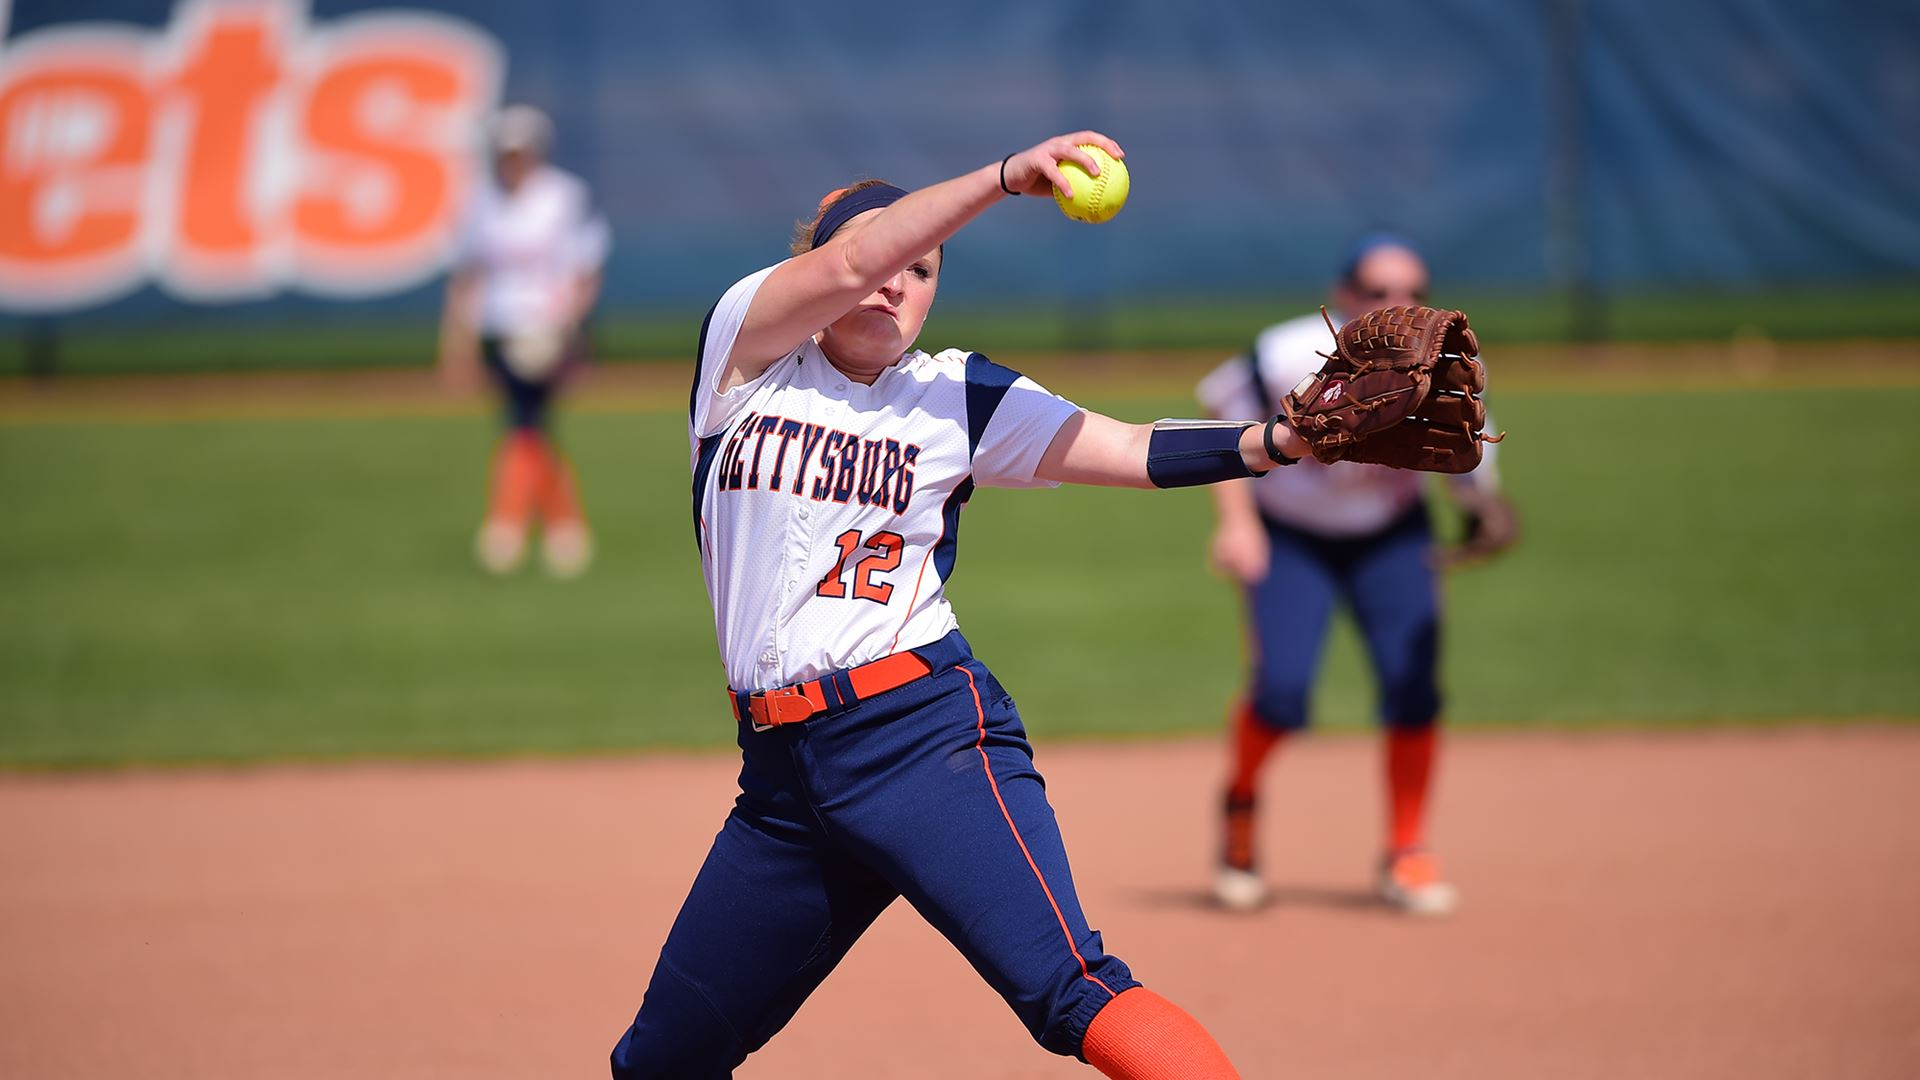 Senior Morgan Clauser tossed a 2-hit shutout against Ramapo College. (Photo courtesy of David Sinclair)